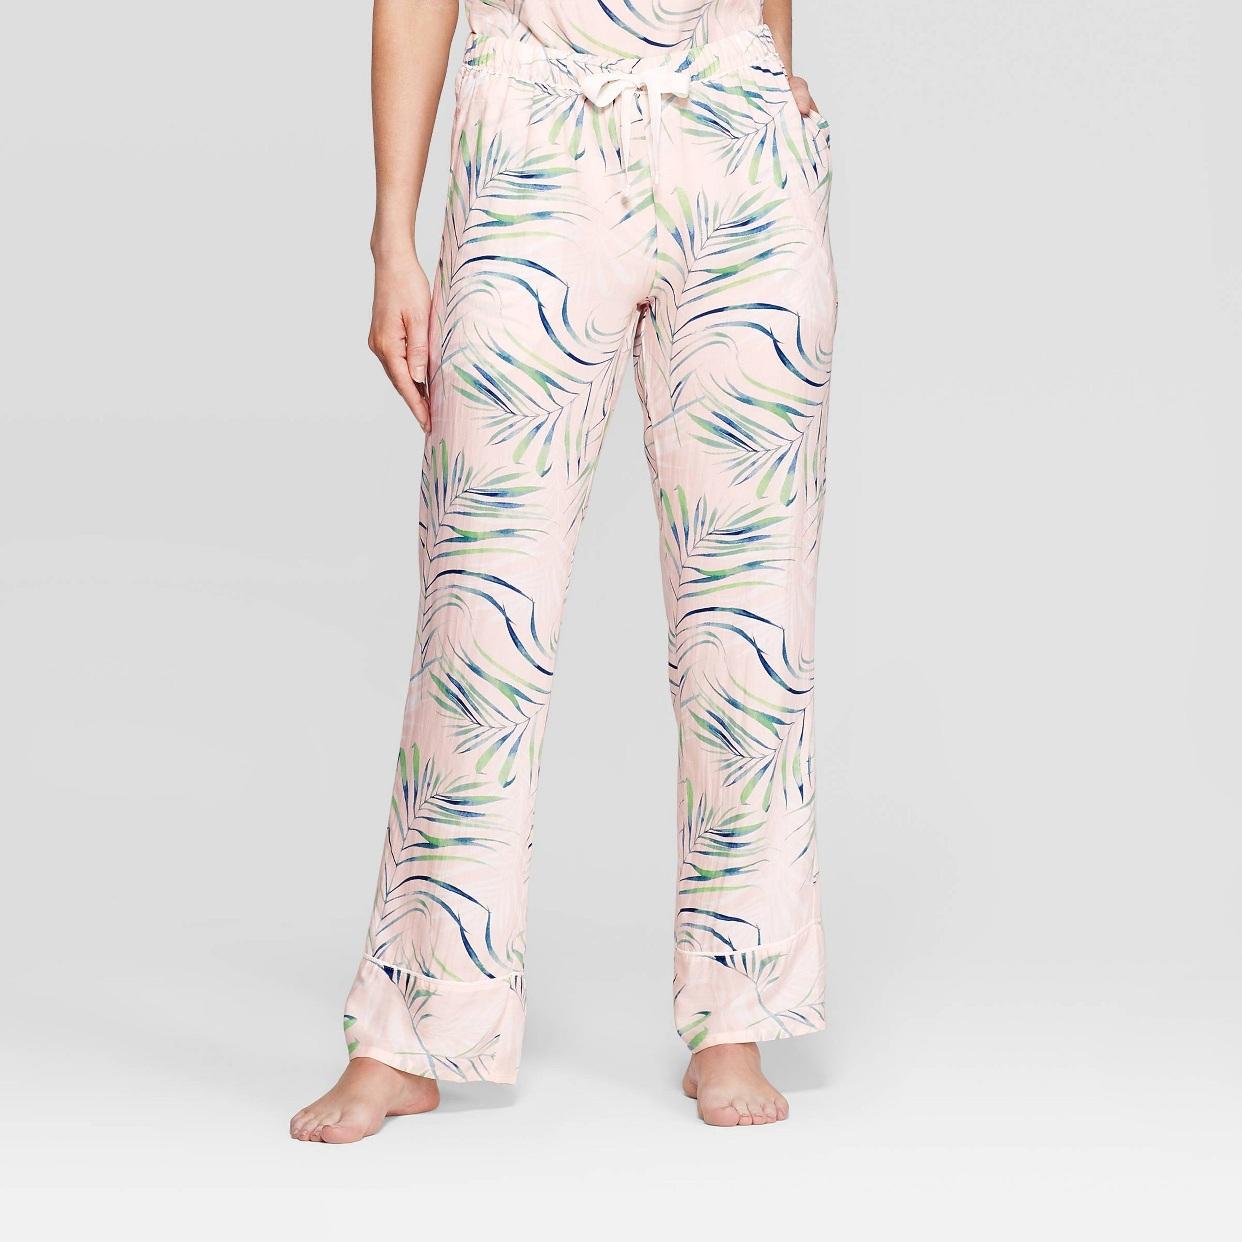 - Silky soft and like a mini vacation for your legs. What is it about new silky soft pj's that make you feel like a new woman?Find them here.